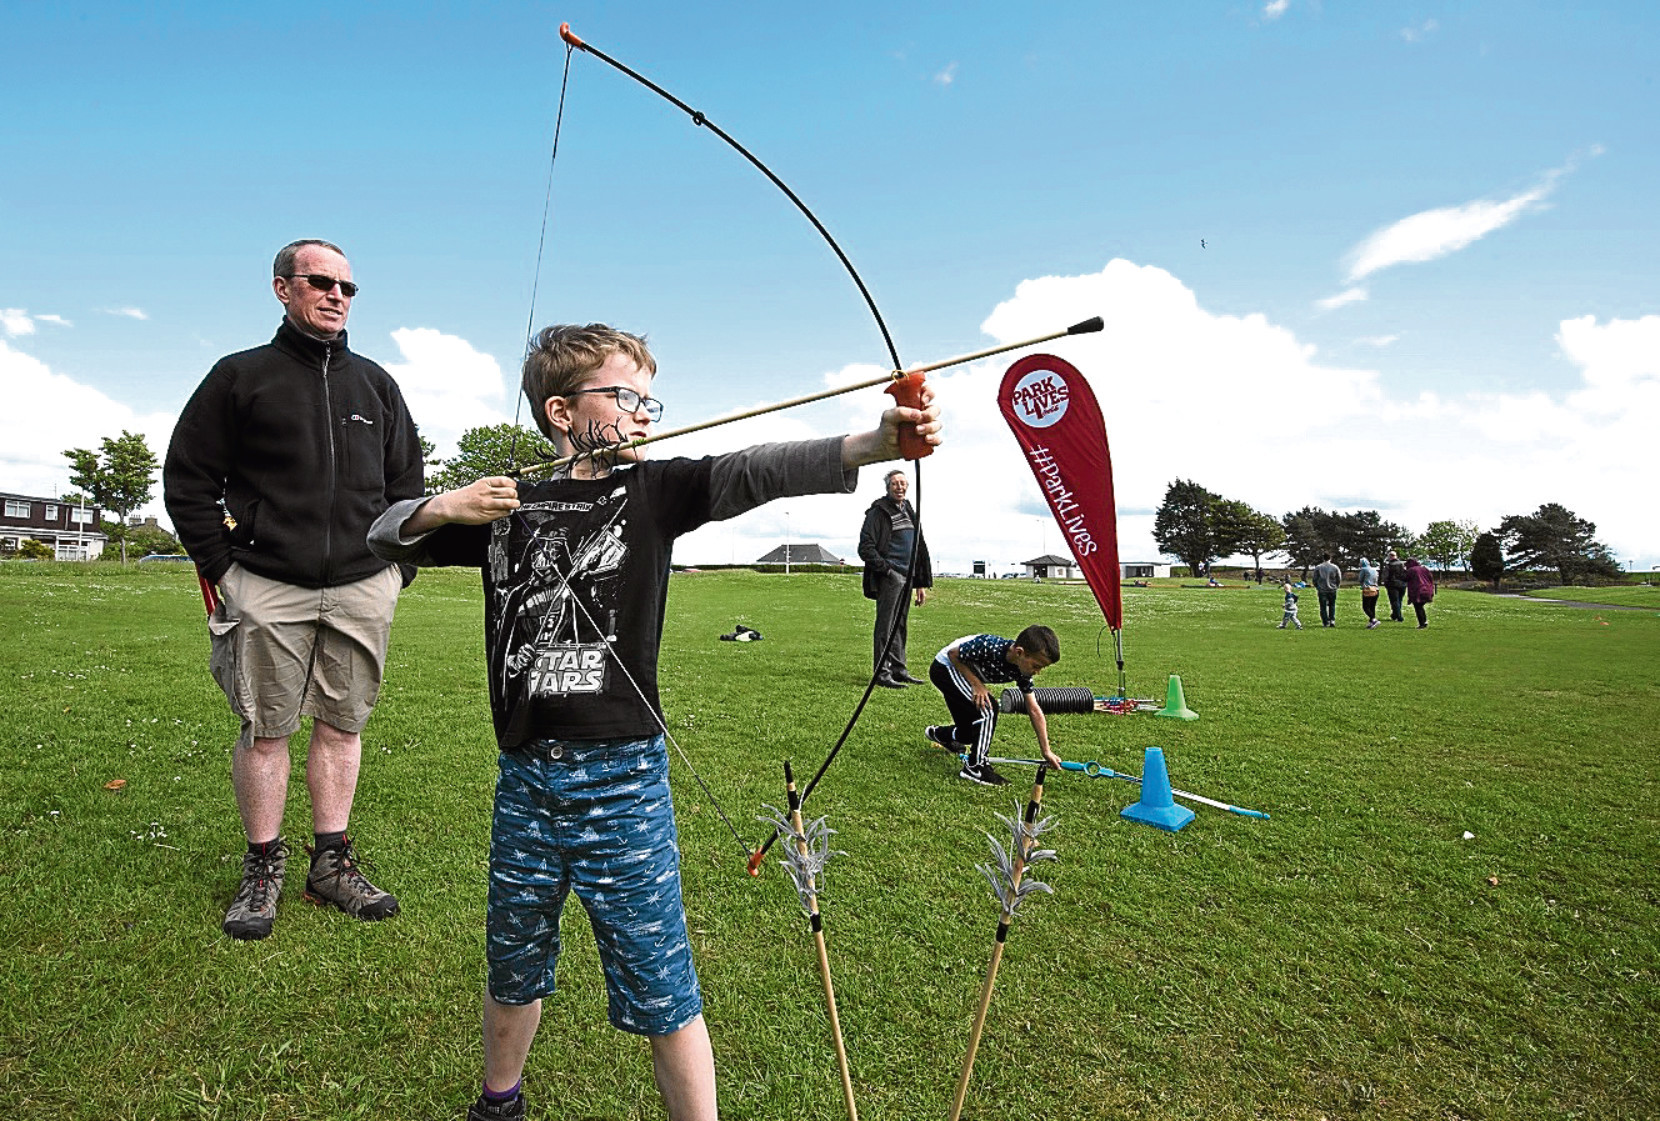 Benjamin Glancey and his dad Michael at the archery session as part of the ParkLives programme